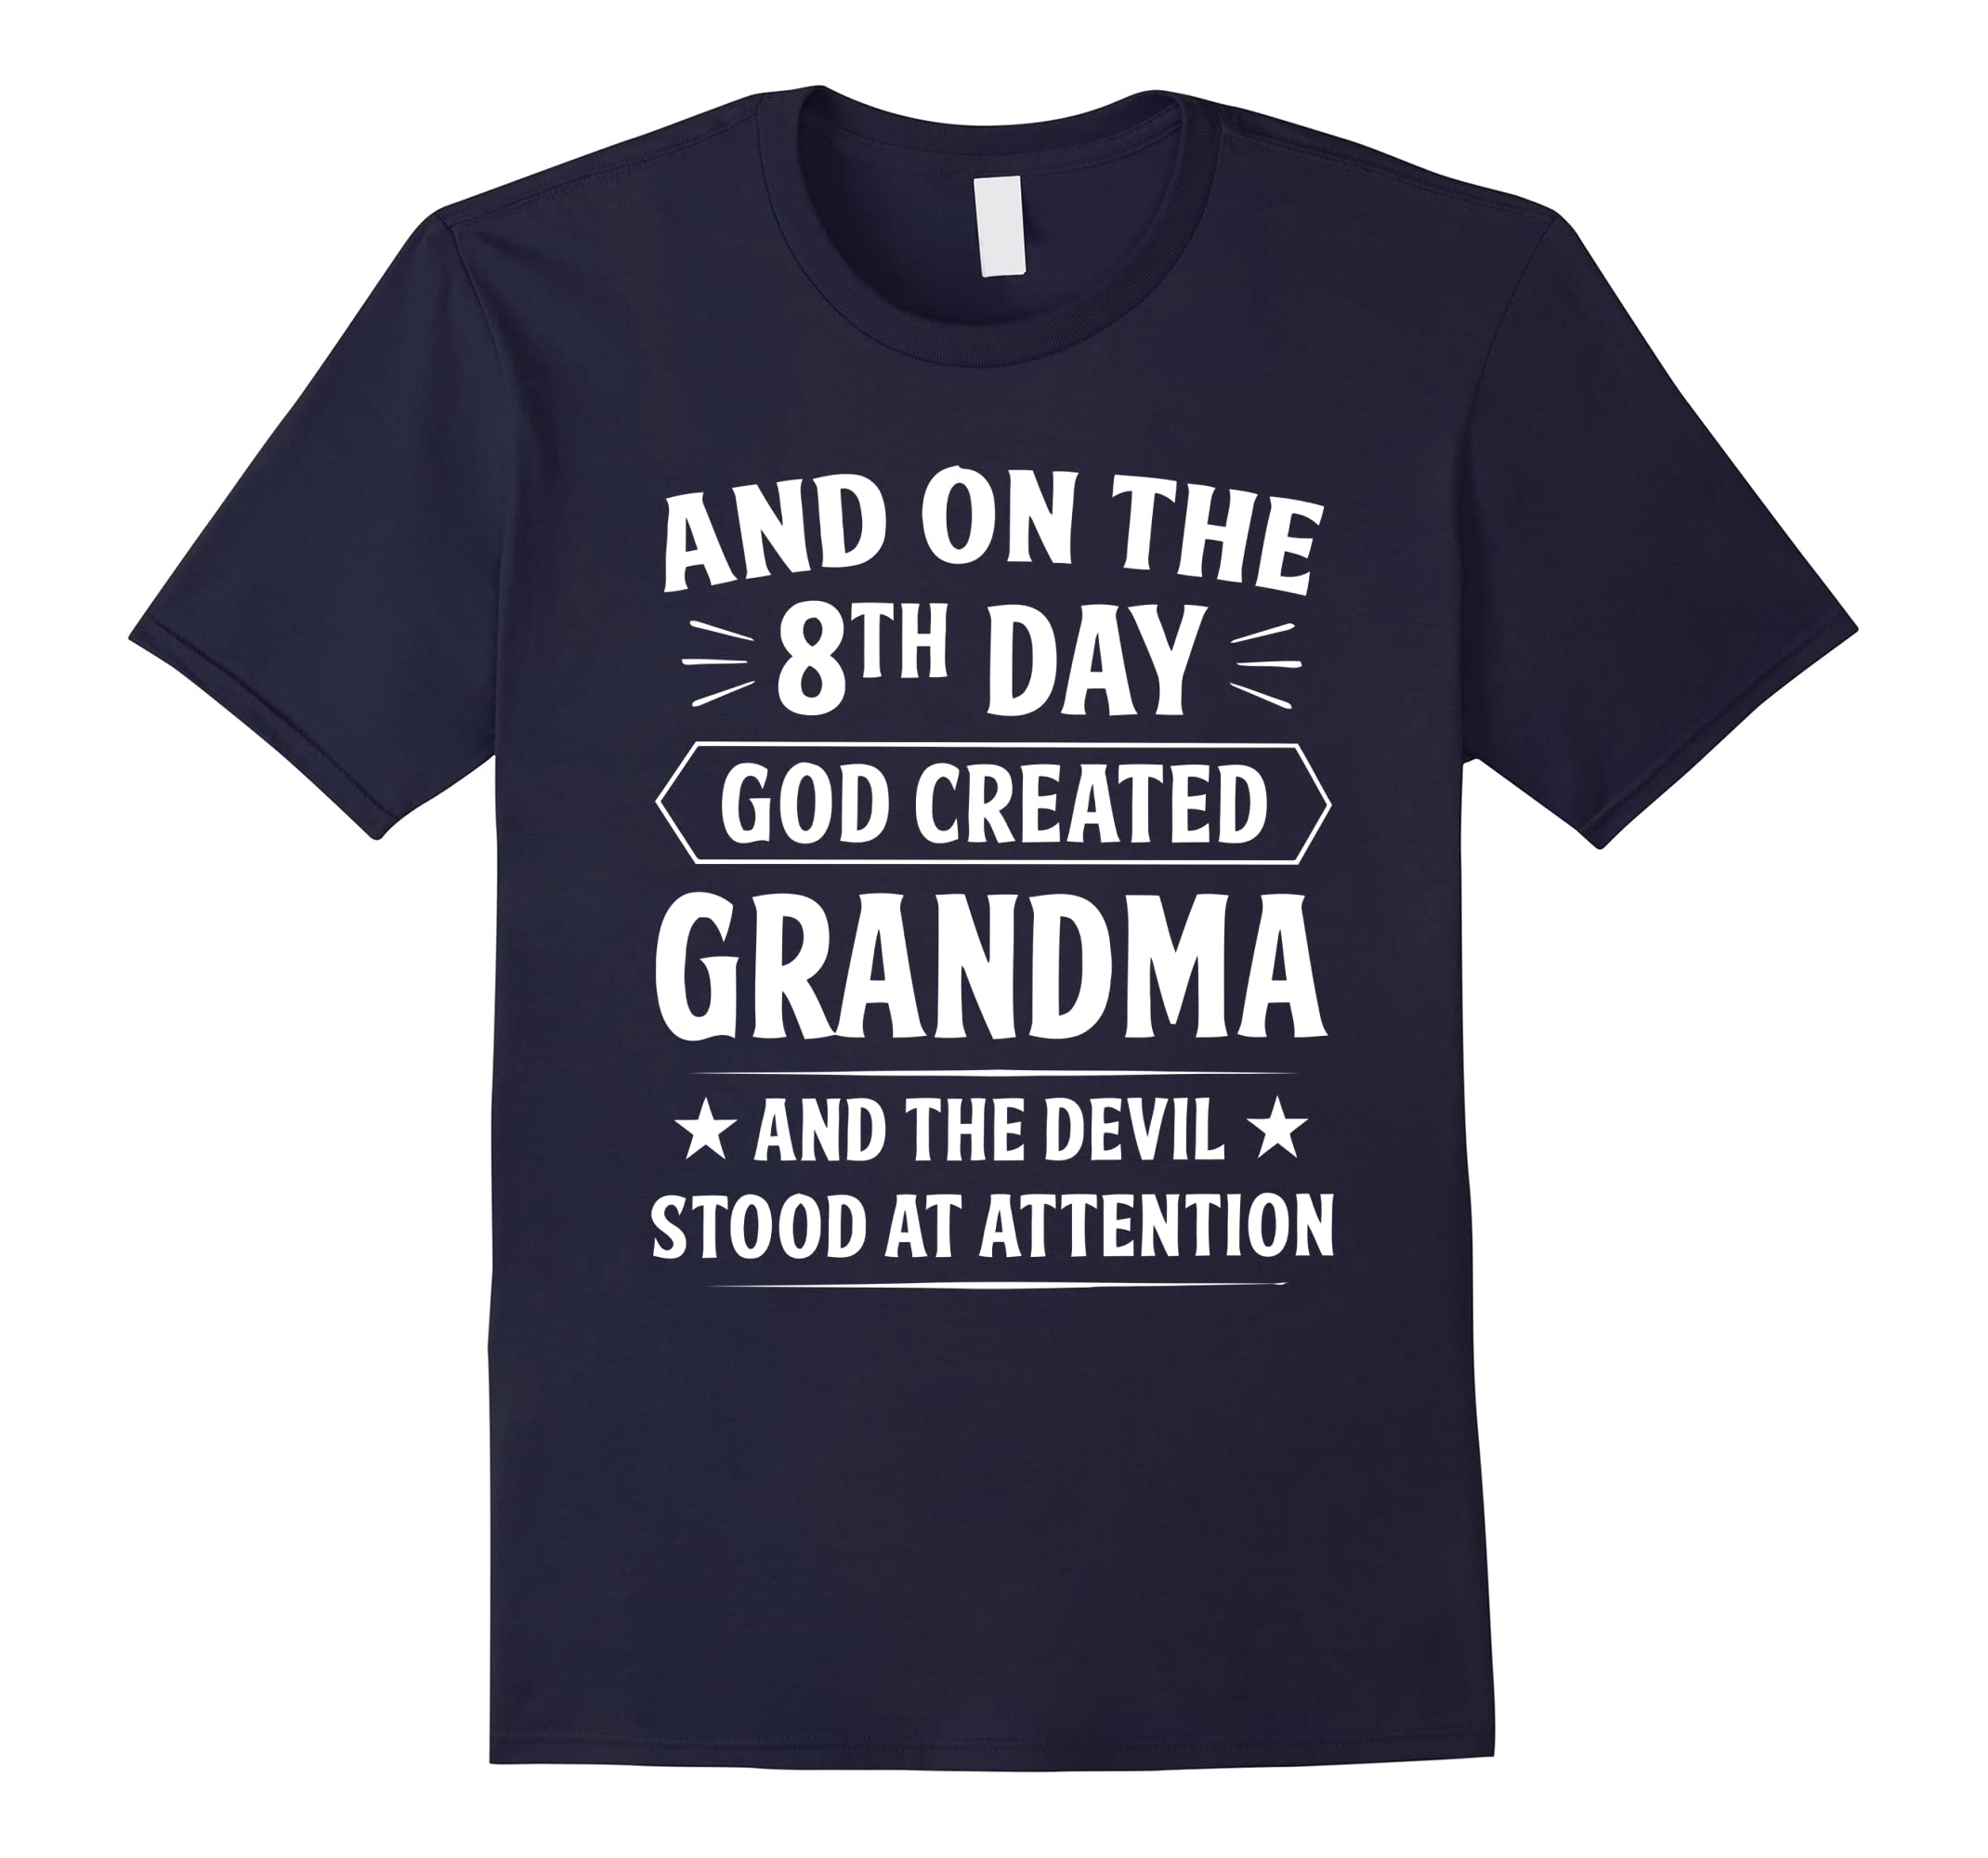 And On The 8th Day God Created Grandma T-shirt-ah my shirt one gift